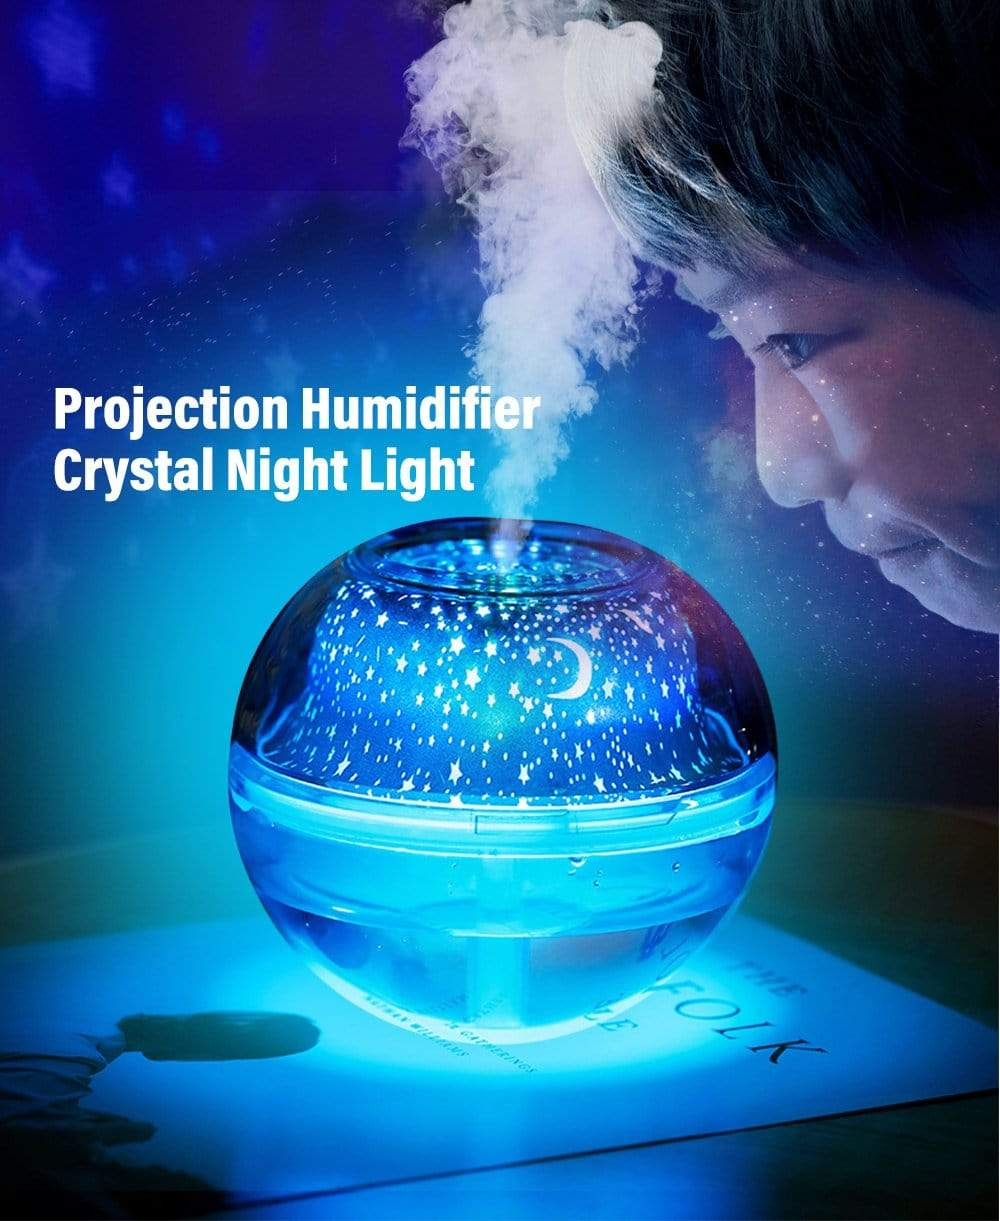 CRYSTAL LED NIGHT LIGHT PROJECTION HUMIDIFIER ,DIFFUSER AIR FRESHNER  With  Free Essential Oil Worth Rs. 599